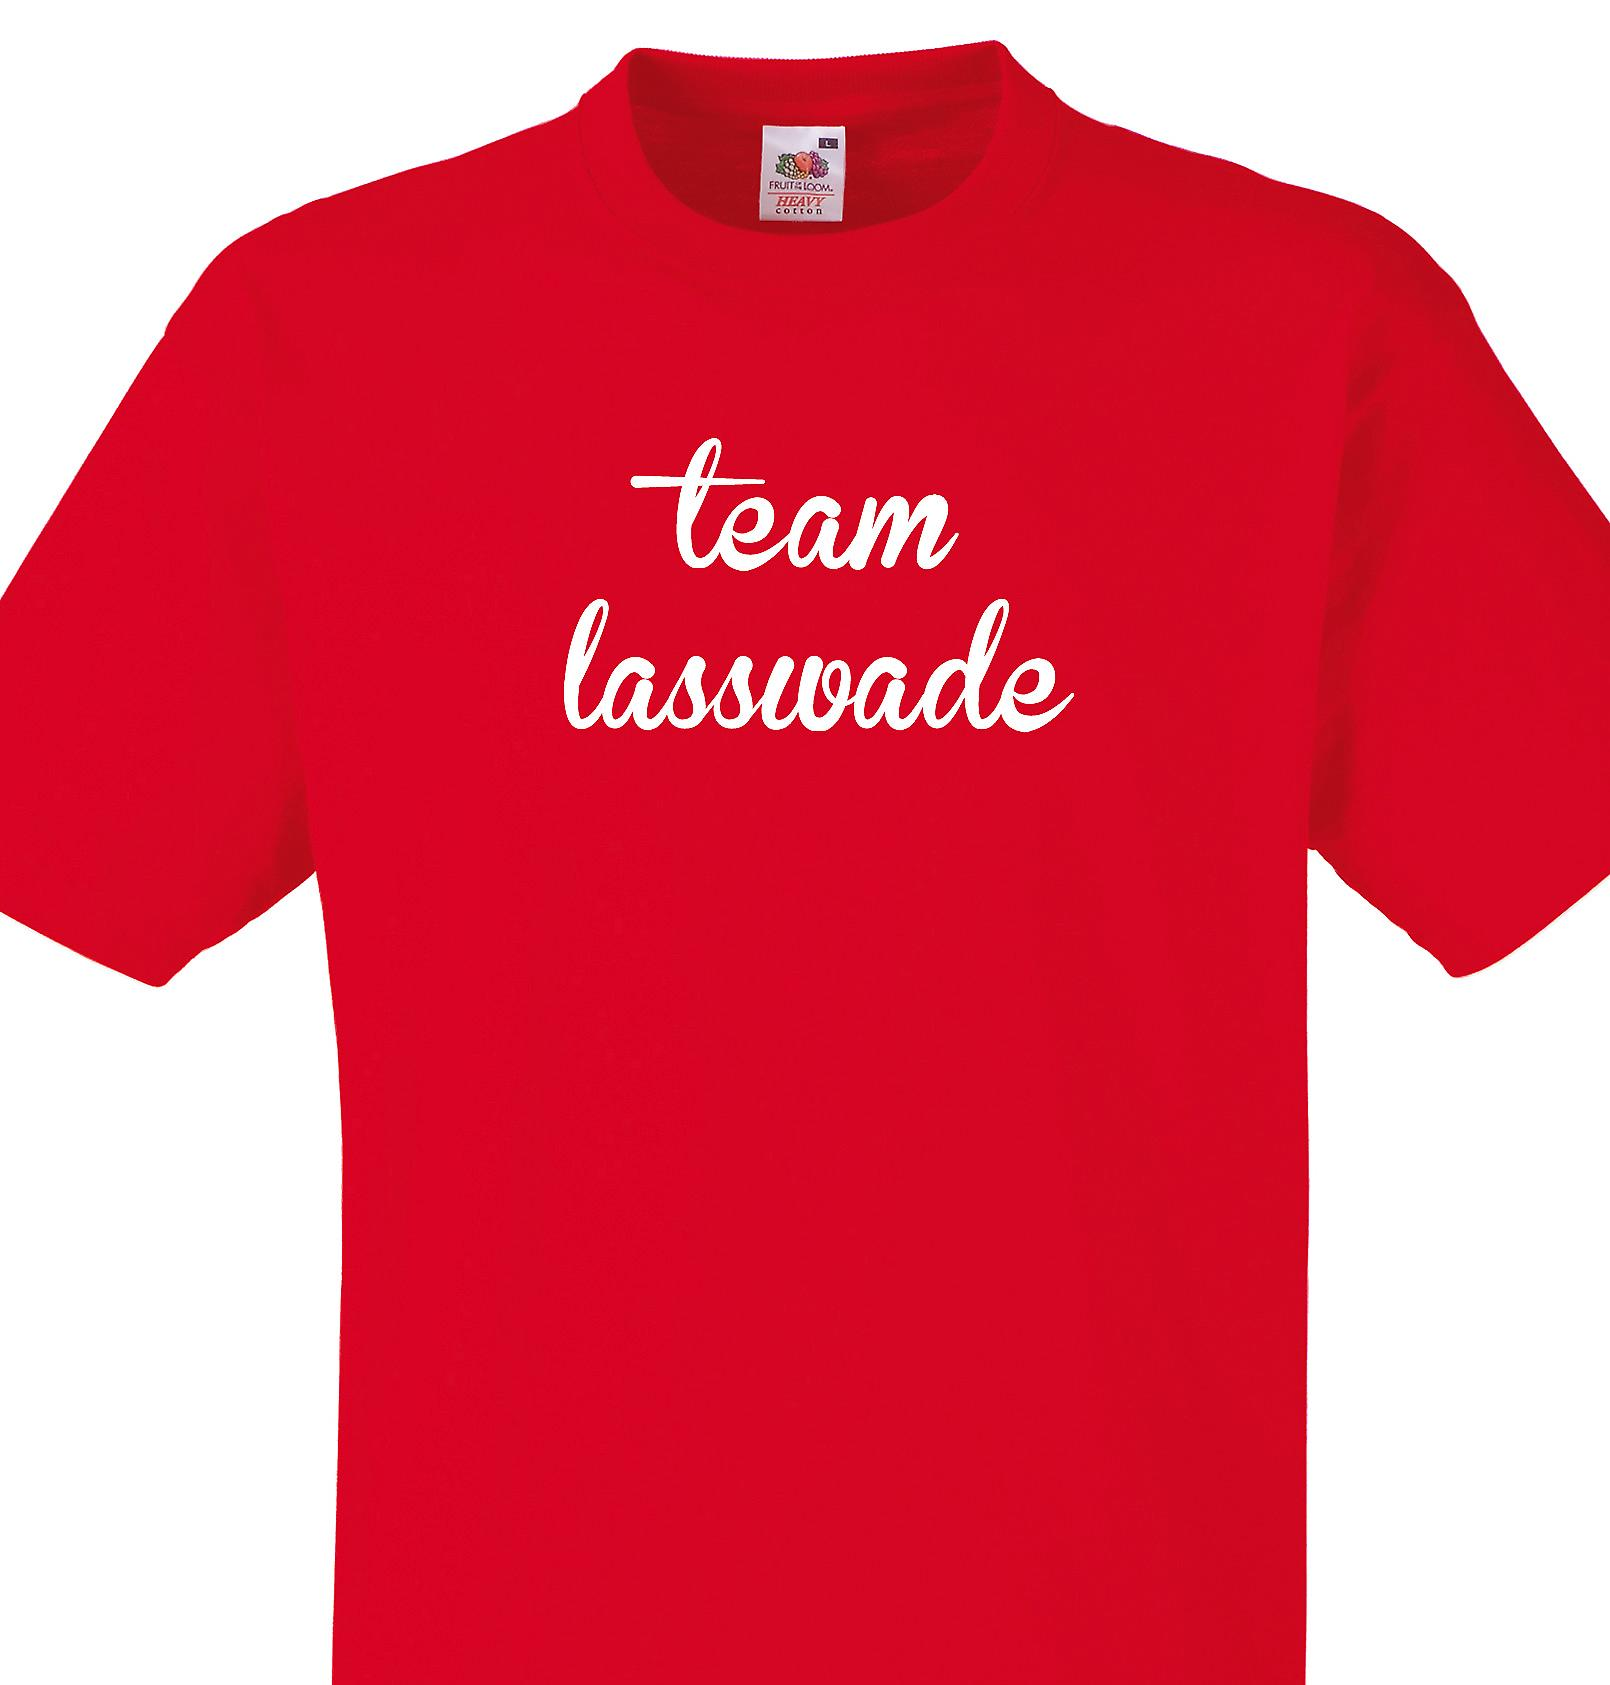 Team Lasswade Red T shirt